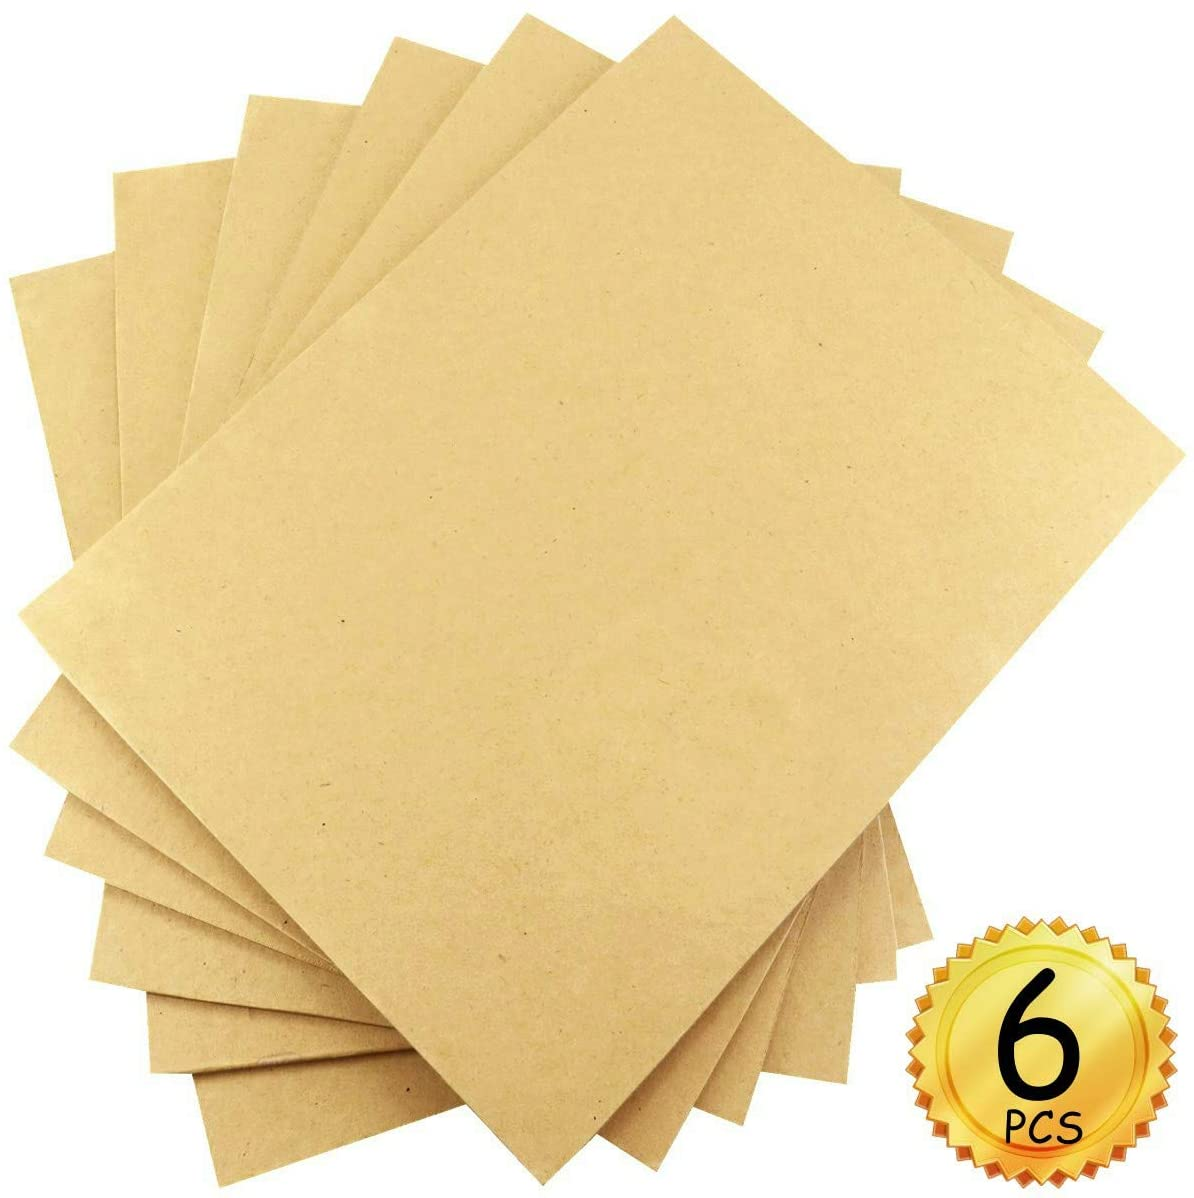 YG_Oline 6 Pcs 9 11.8 Hardboard Panels, Transport Hardboard Packaging Board Particle Board DIY Painting Crafts, 1/8 in Thickness